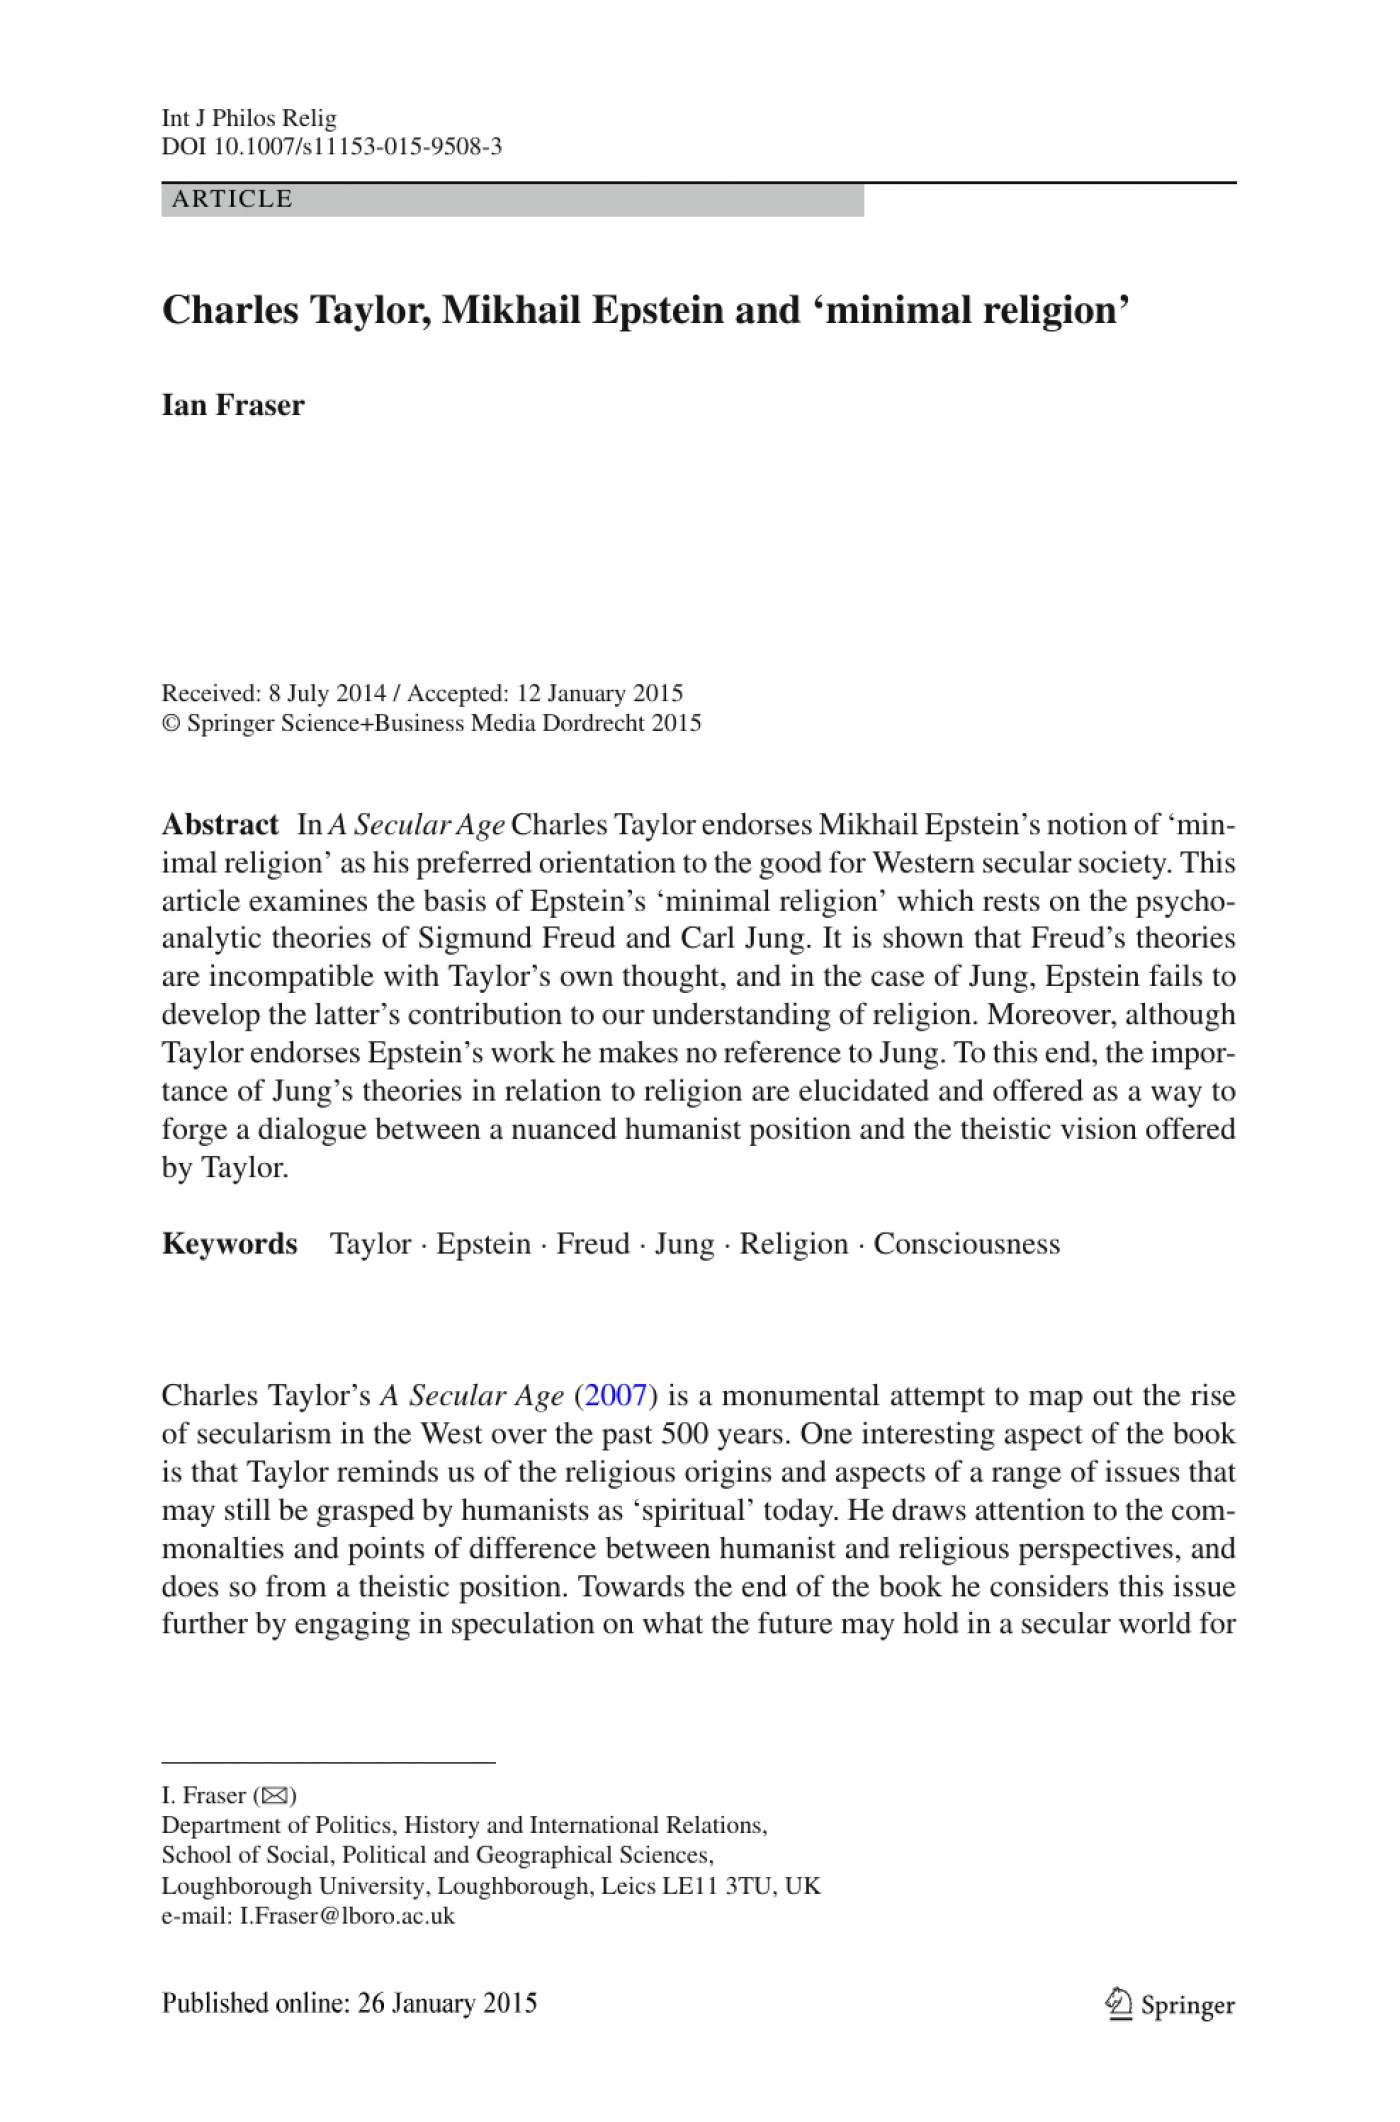 006 Research Paper Philosophy Of Religion Topics Awful 1400